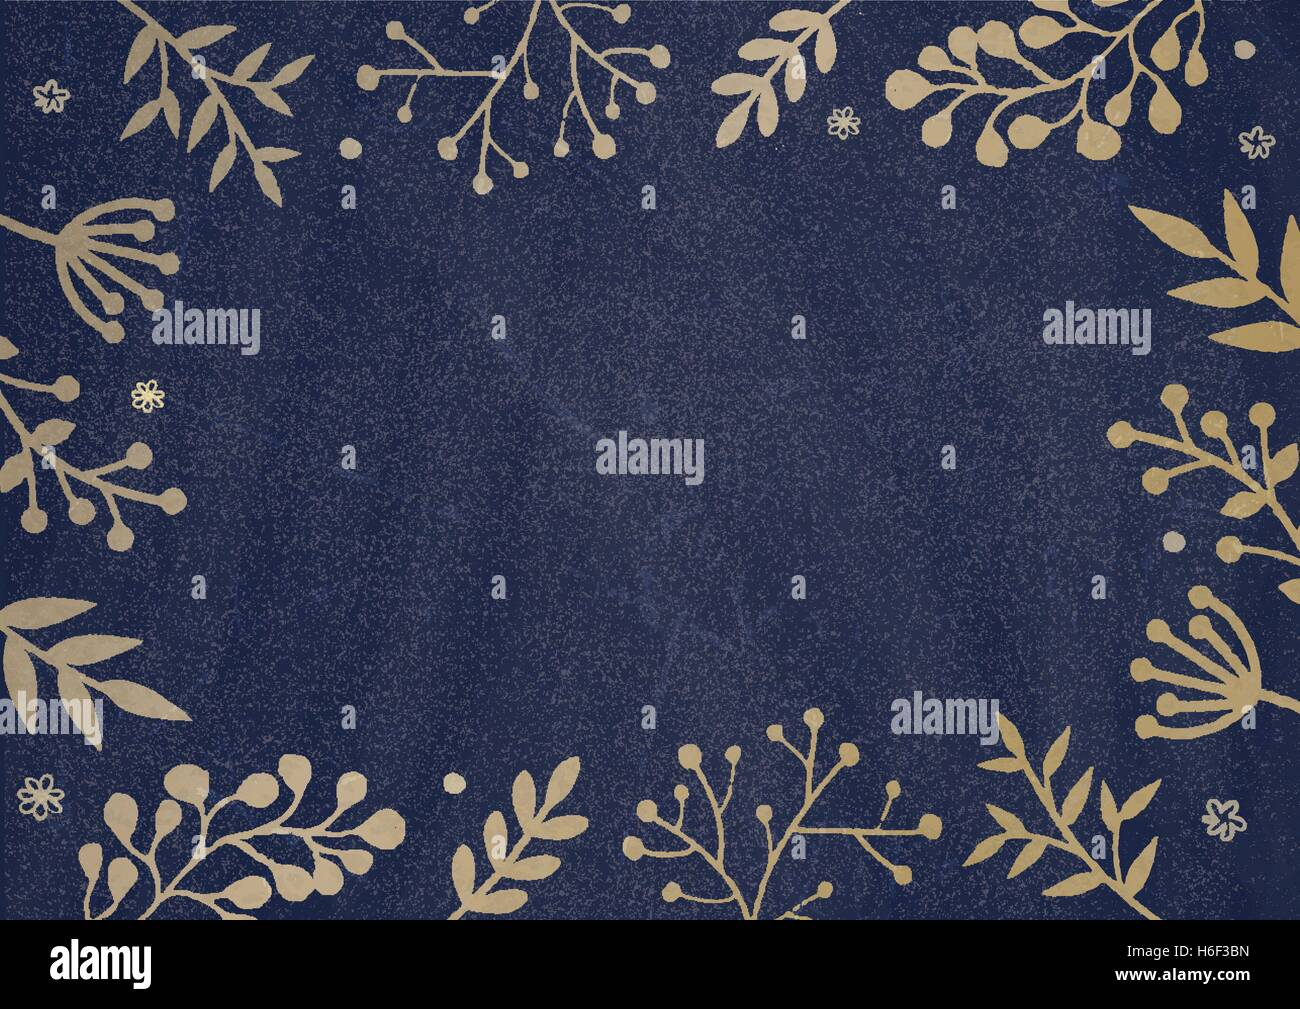 A4 Document Size Dark Blue Board Background With Drawing Flora